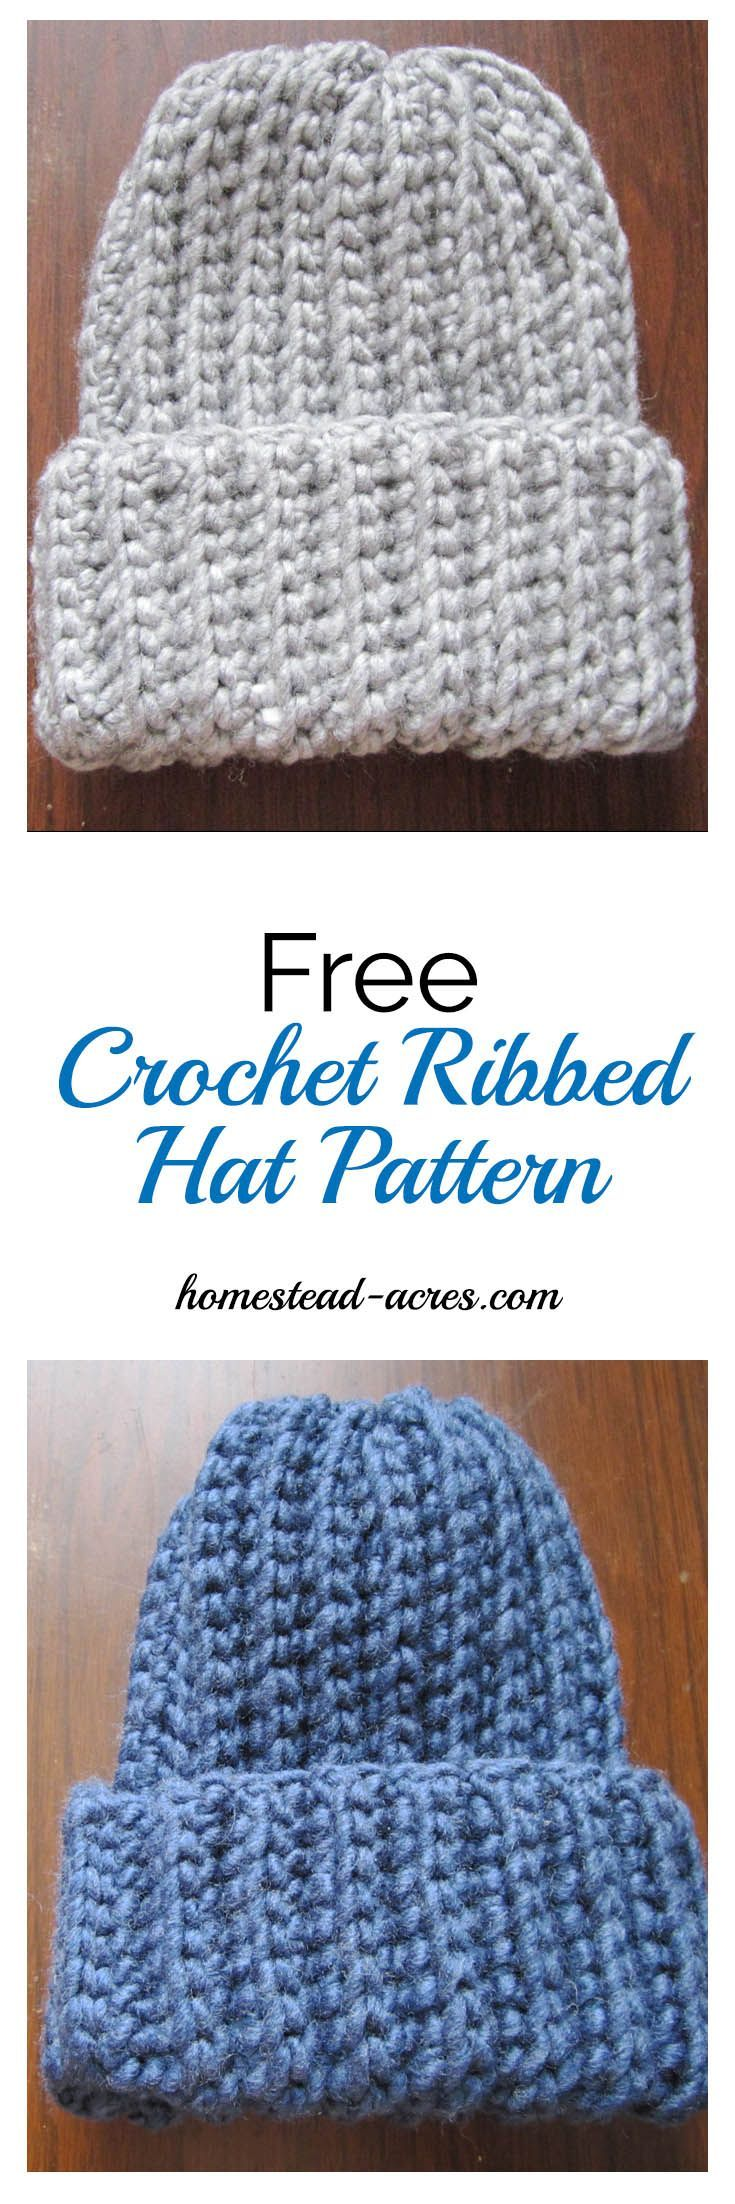 1000 images about knit and crochet on pinterest free pattern how to crochet and double crochet. Black Bedroom Furniture Sets. Home Design Ideas